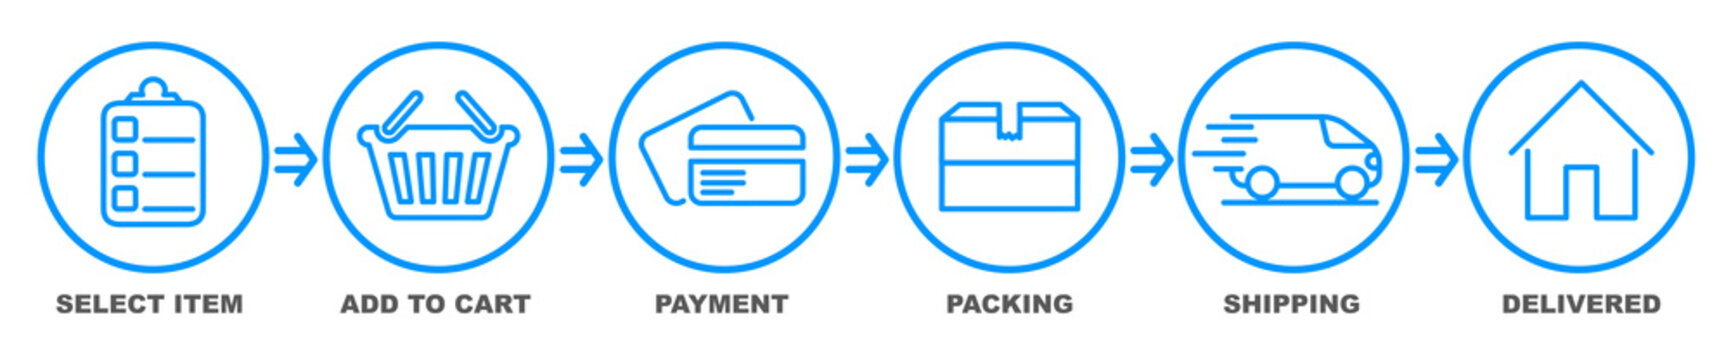 Concept of shopping process with 6 successive steps. Order parcel processing bar, ship, delivery signs for express courier delivery. Order delivery status, post parcel package tracking icons - vector